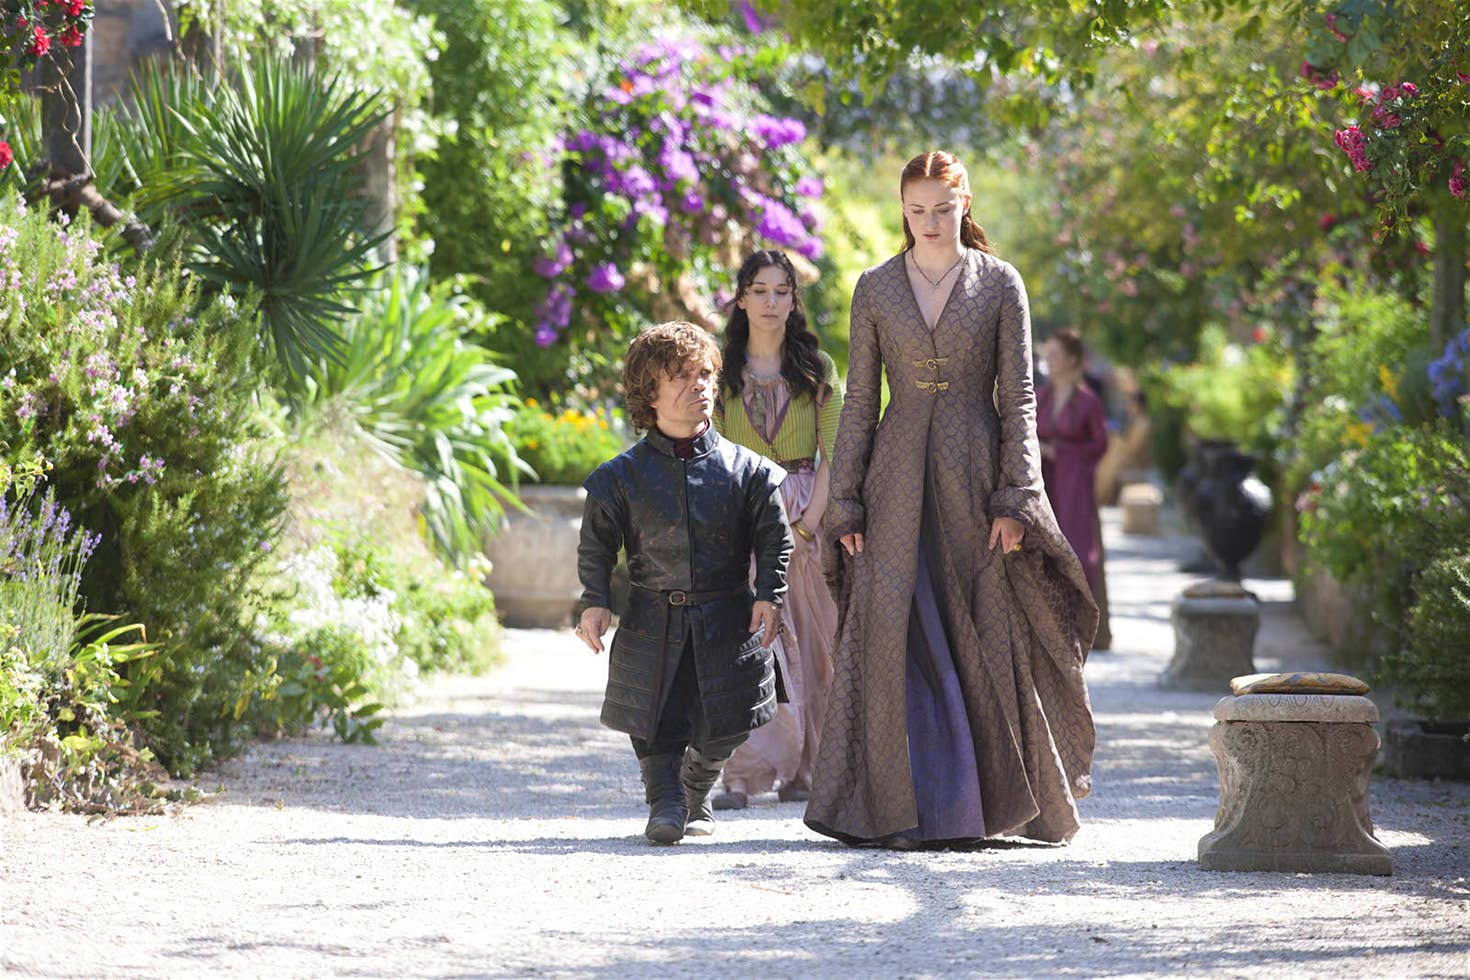 Tyrion and Sansa stroll through Trsteno Gardens